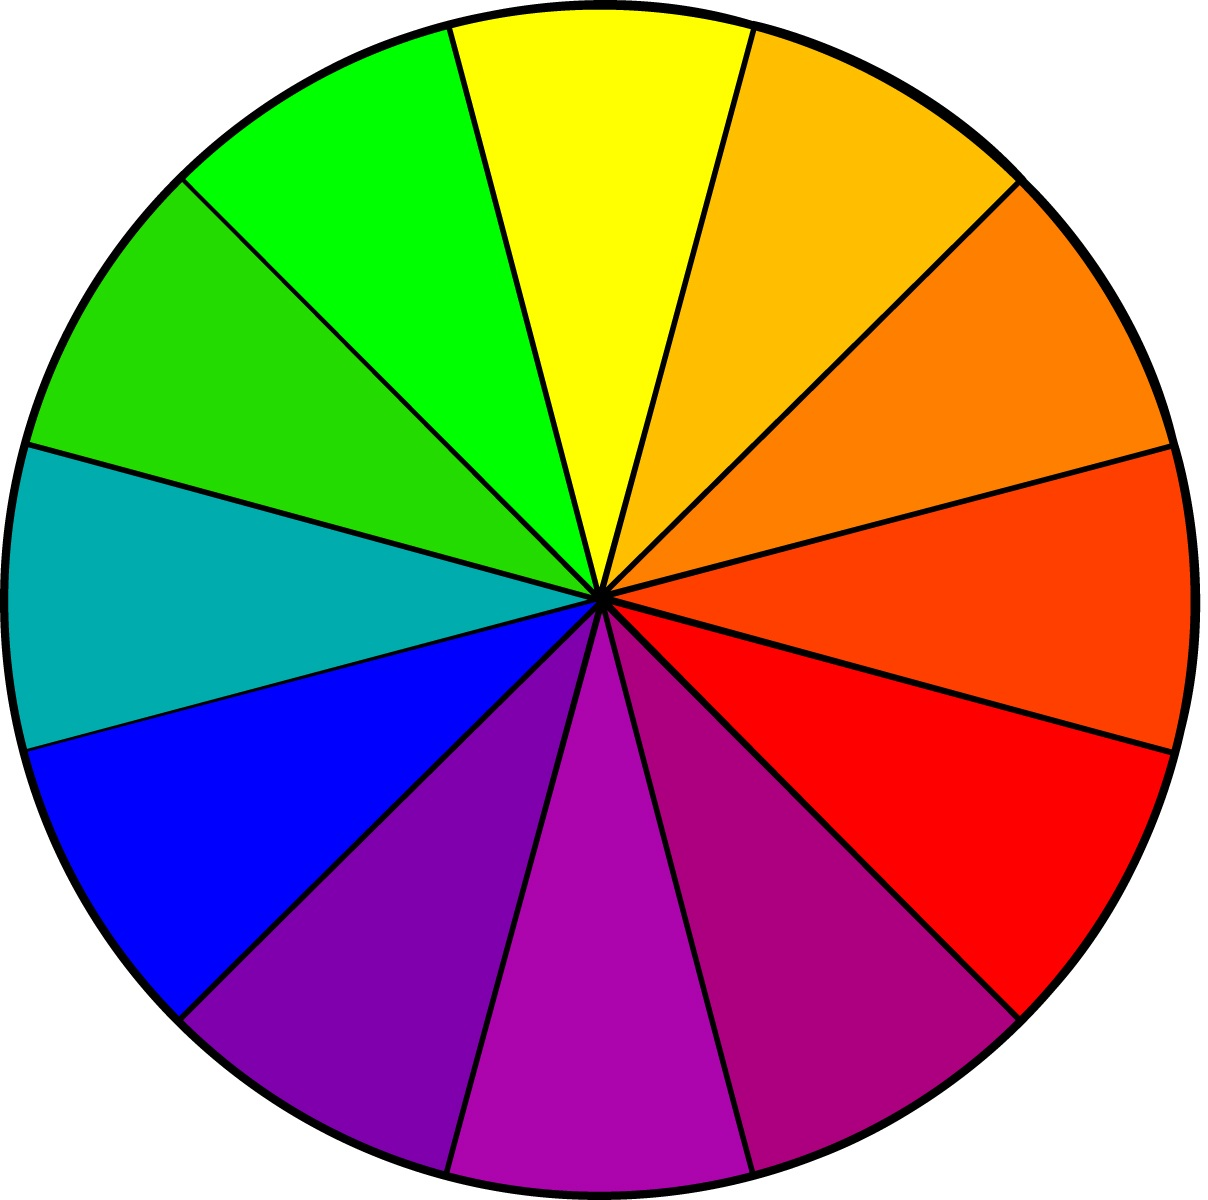 Rgb Color Wheel Hex Values Printable Blank Color Wheel